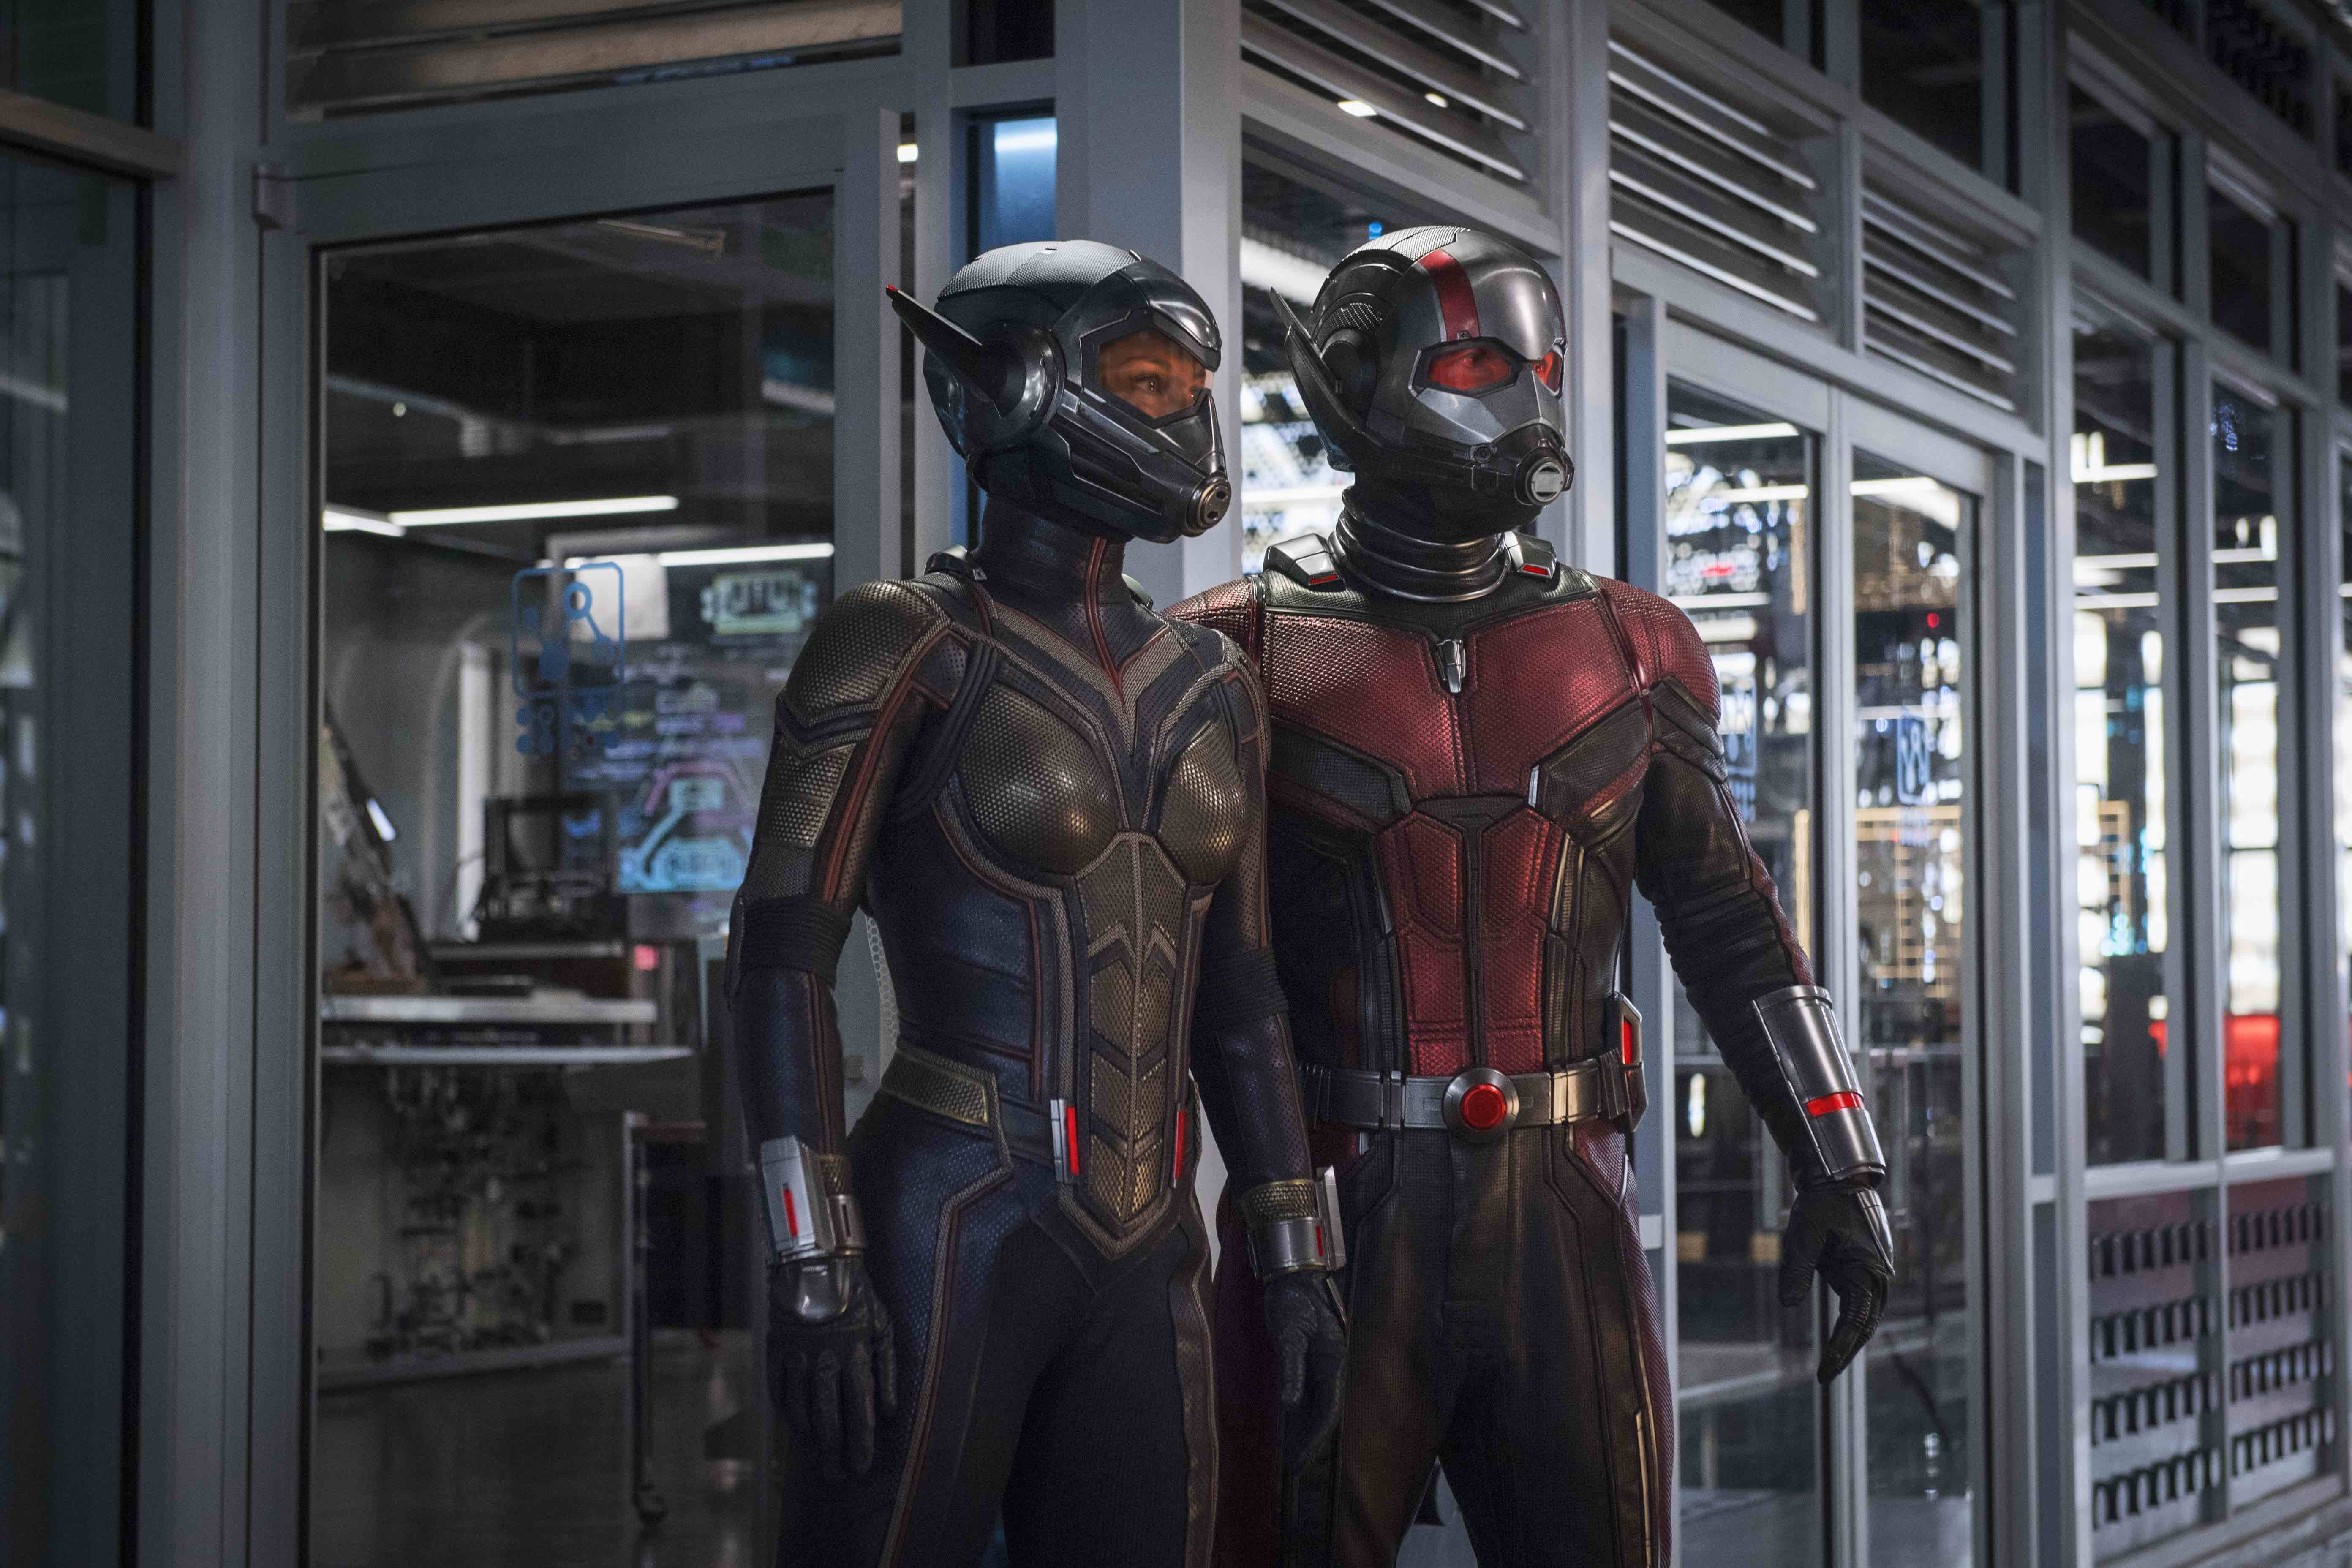 Kevin Feige: 'There Are Earlier Versions Of Ant-Man And The Wasp That You Would Not Be Saying Nice Things About'